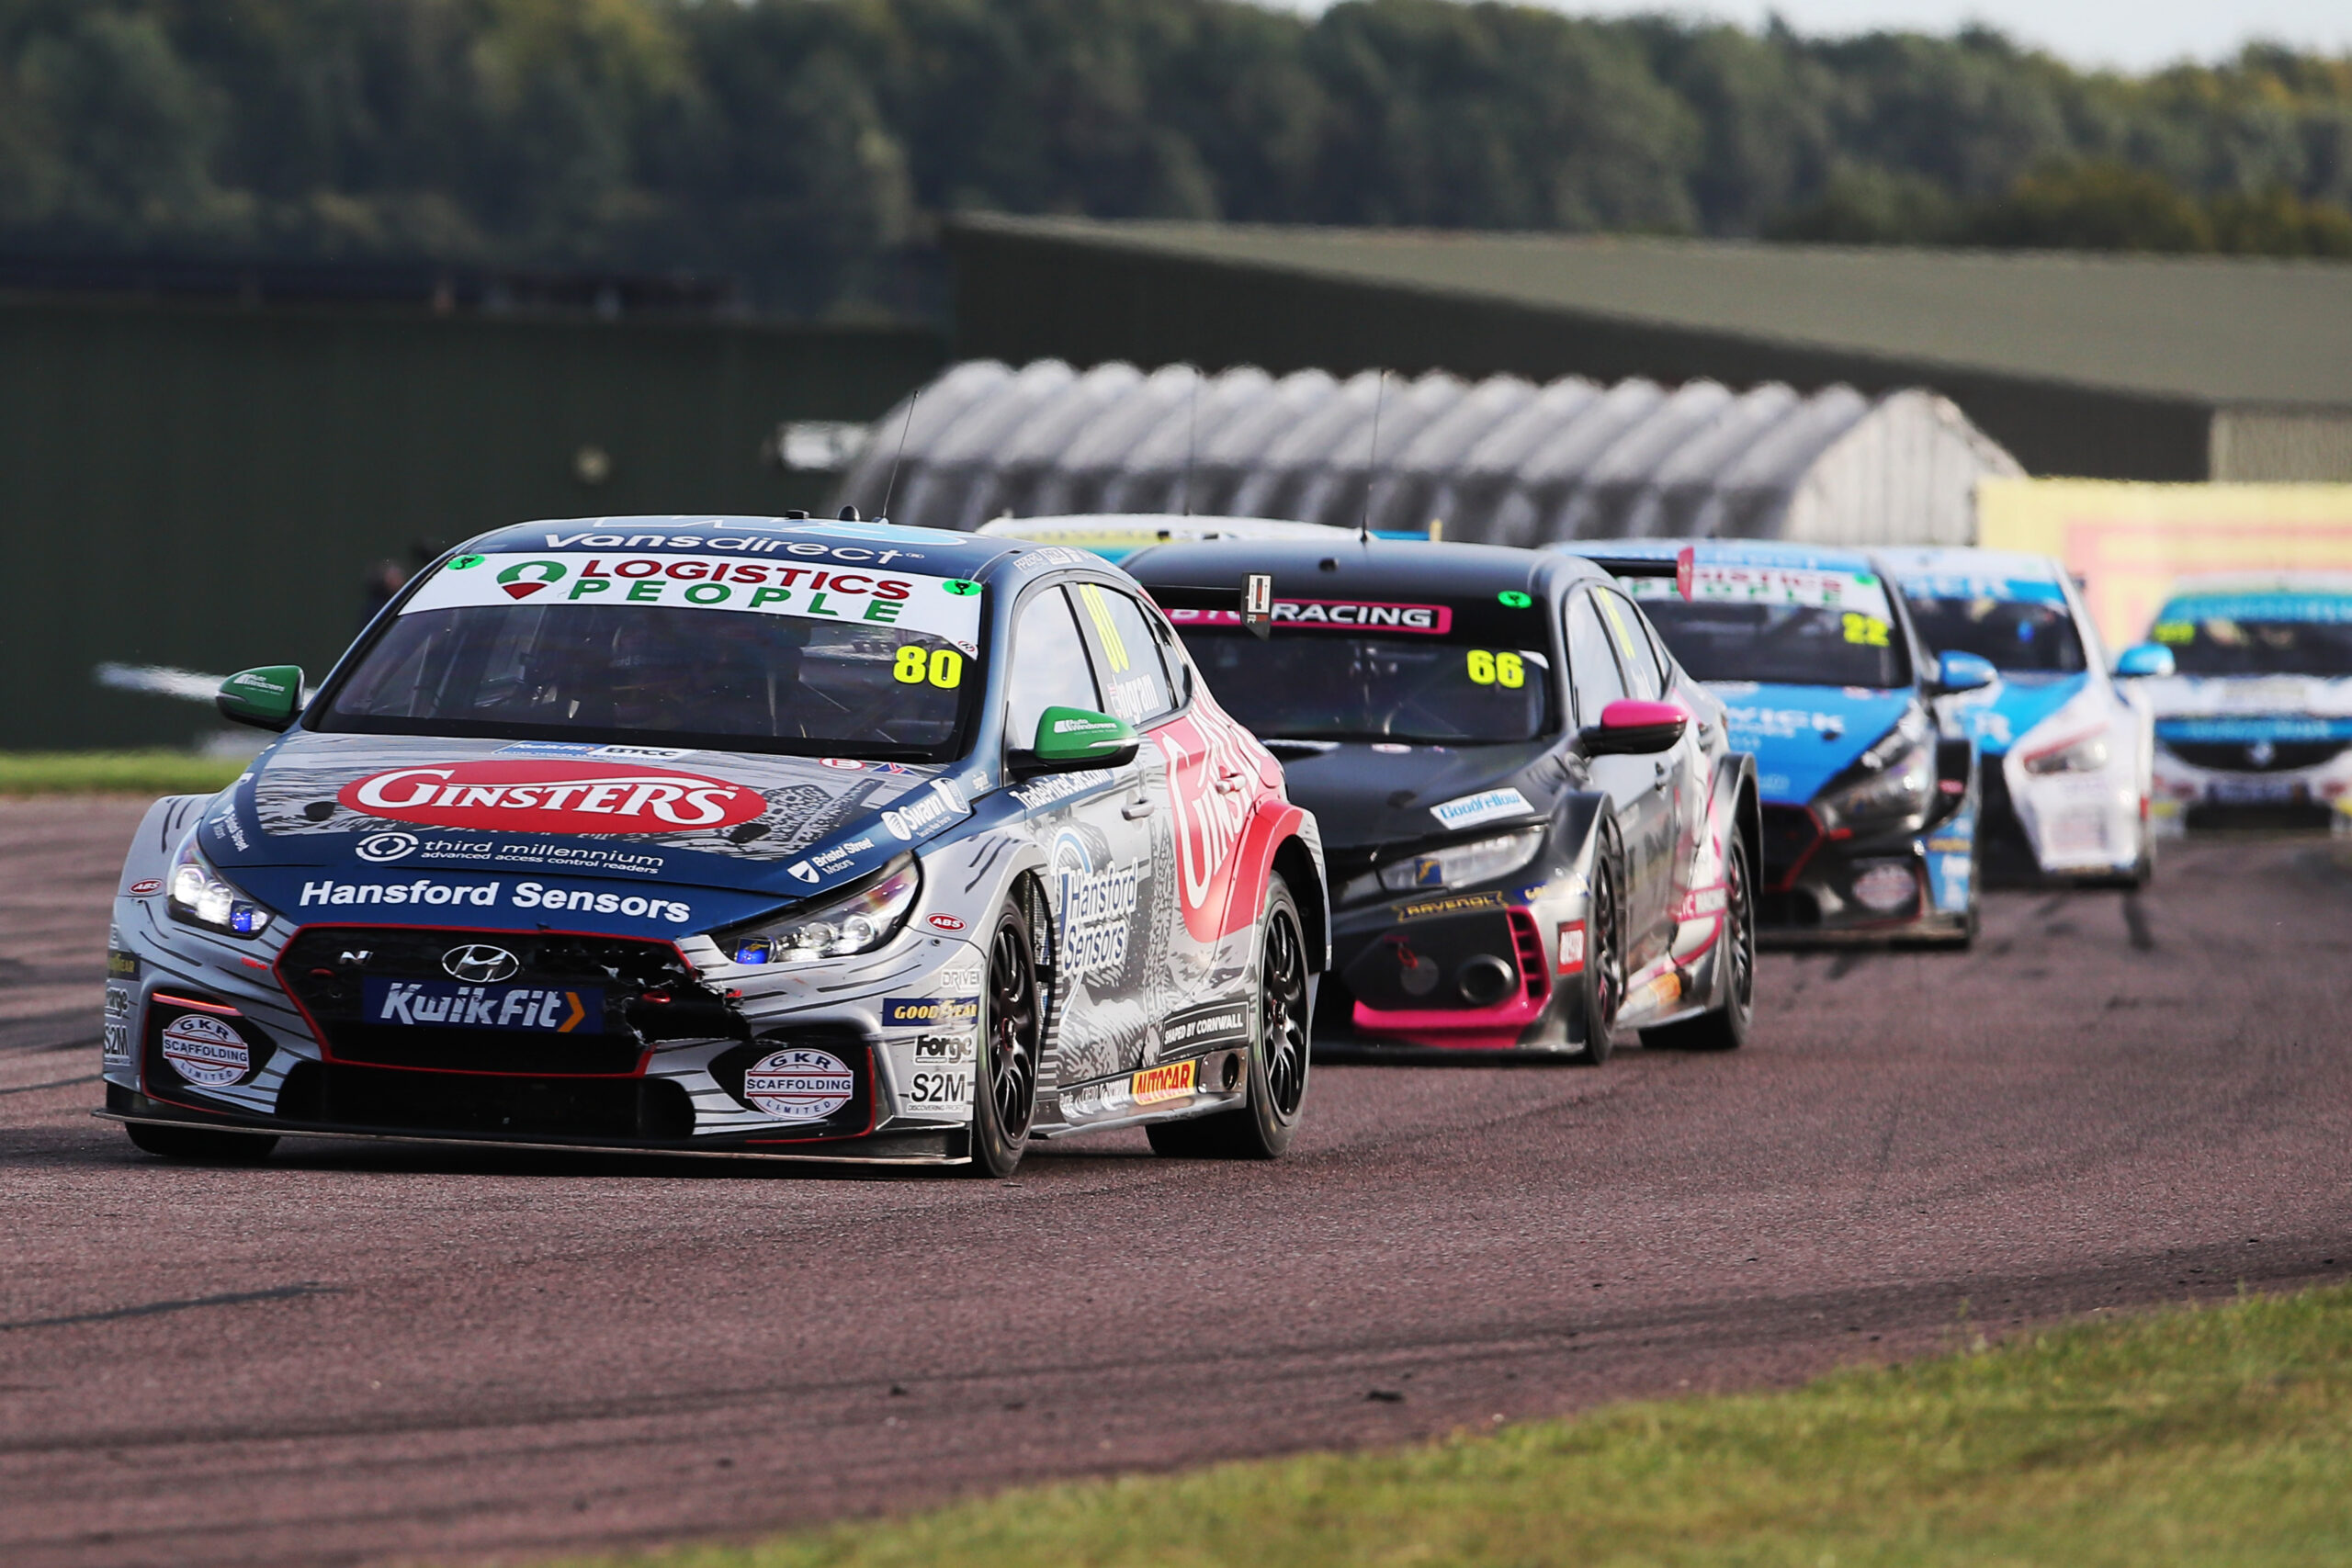 EXCELR8 with TradePriceCars.com seeks to maintain title challenge at Croft